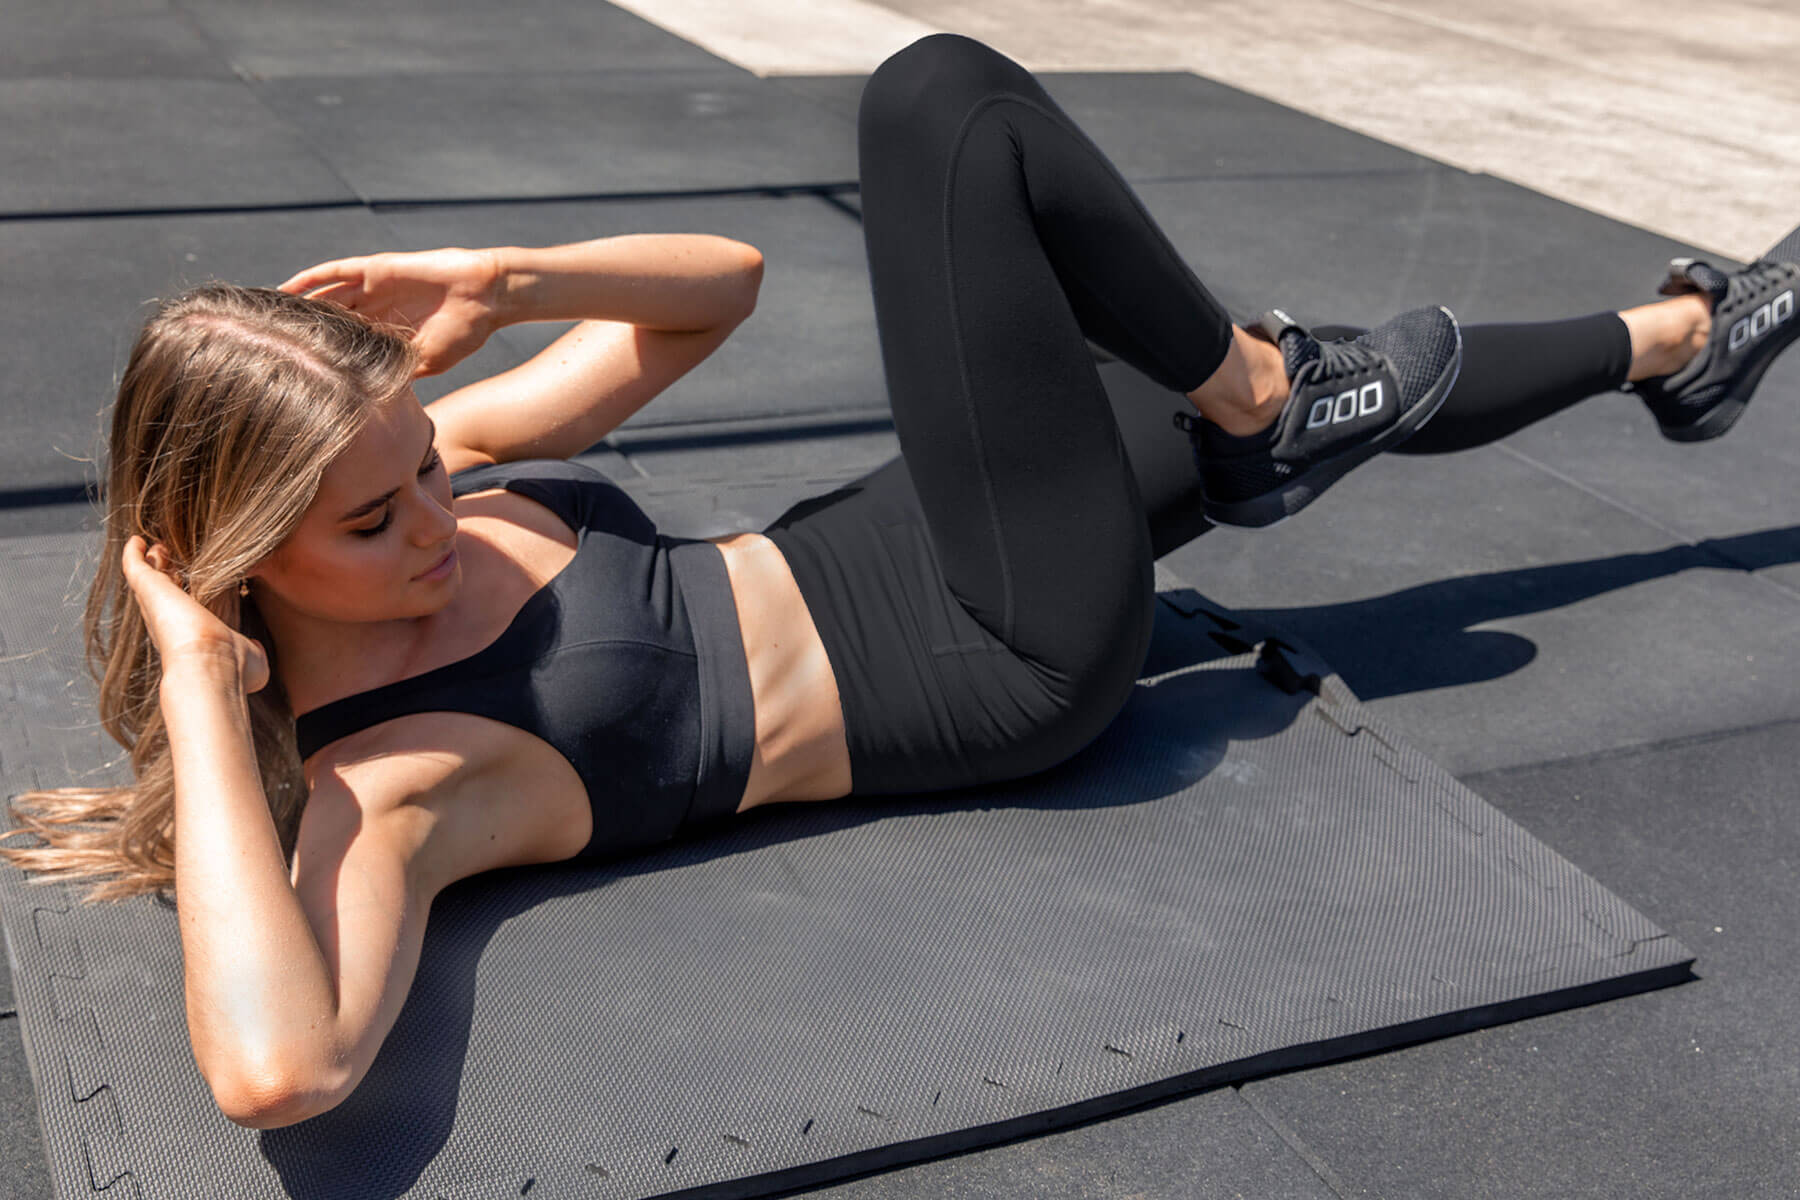 Lorna Jane, an Australia-based seller of affordable women's activewear and accessories, filed for Chapter 11 bankruptcy in the U.S. and is seeking to cancel all 21 of its U.S. store leases.